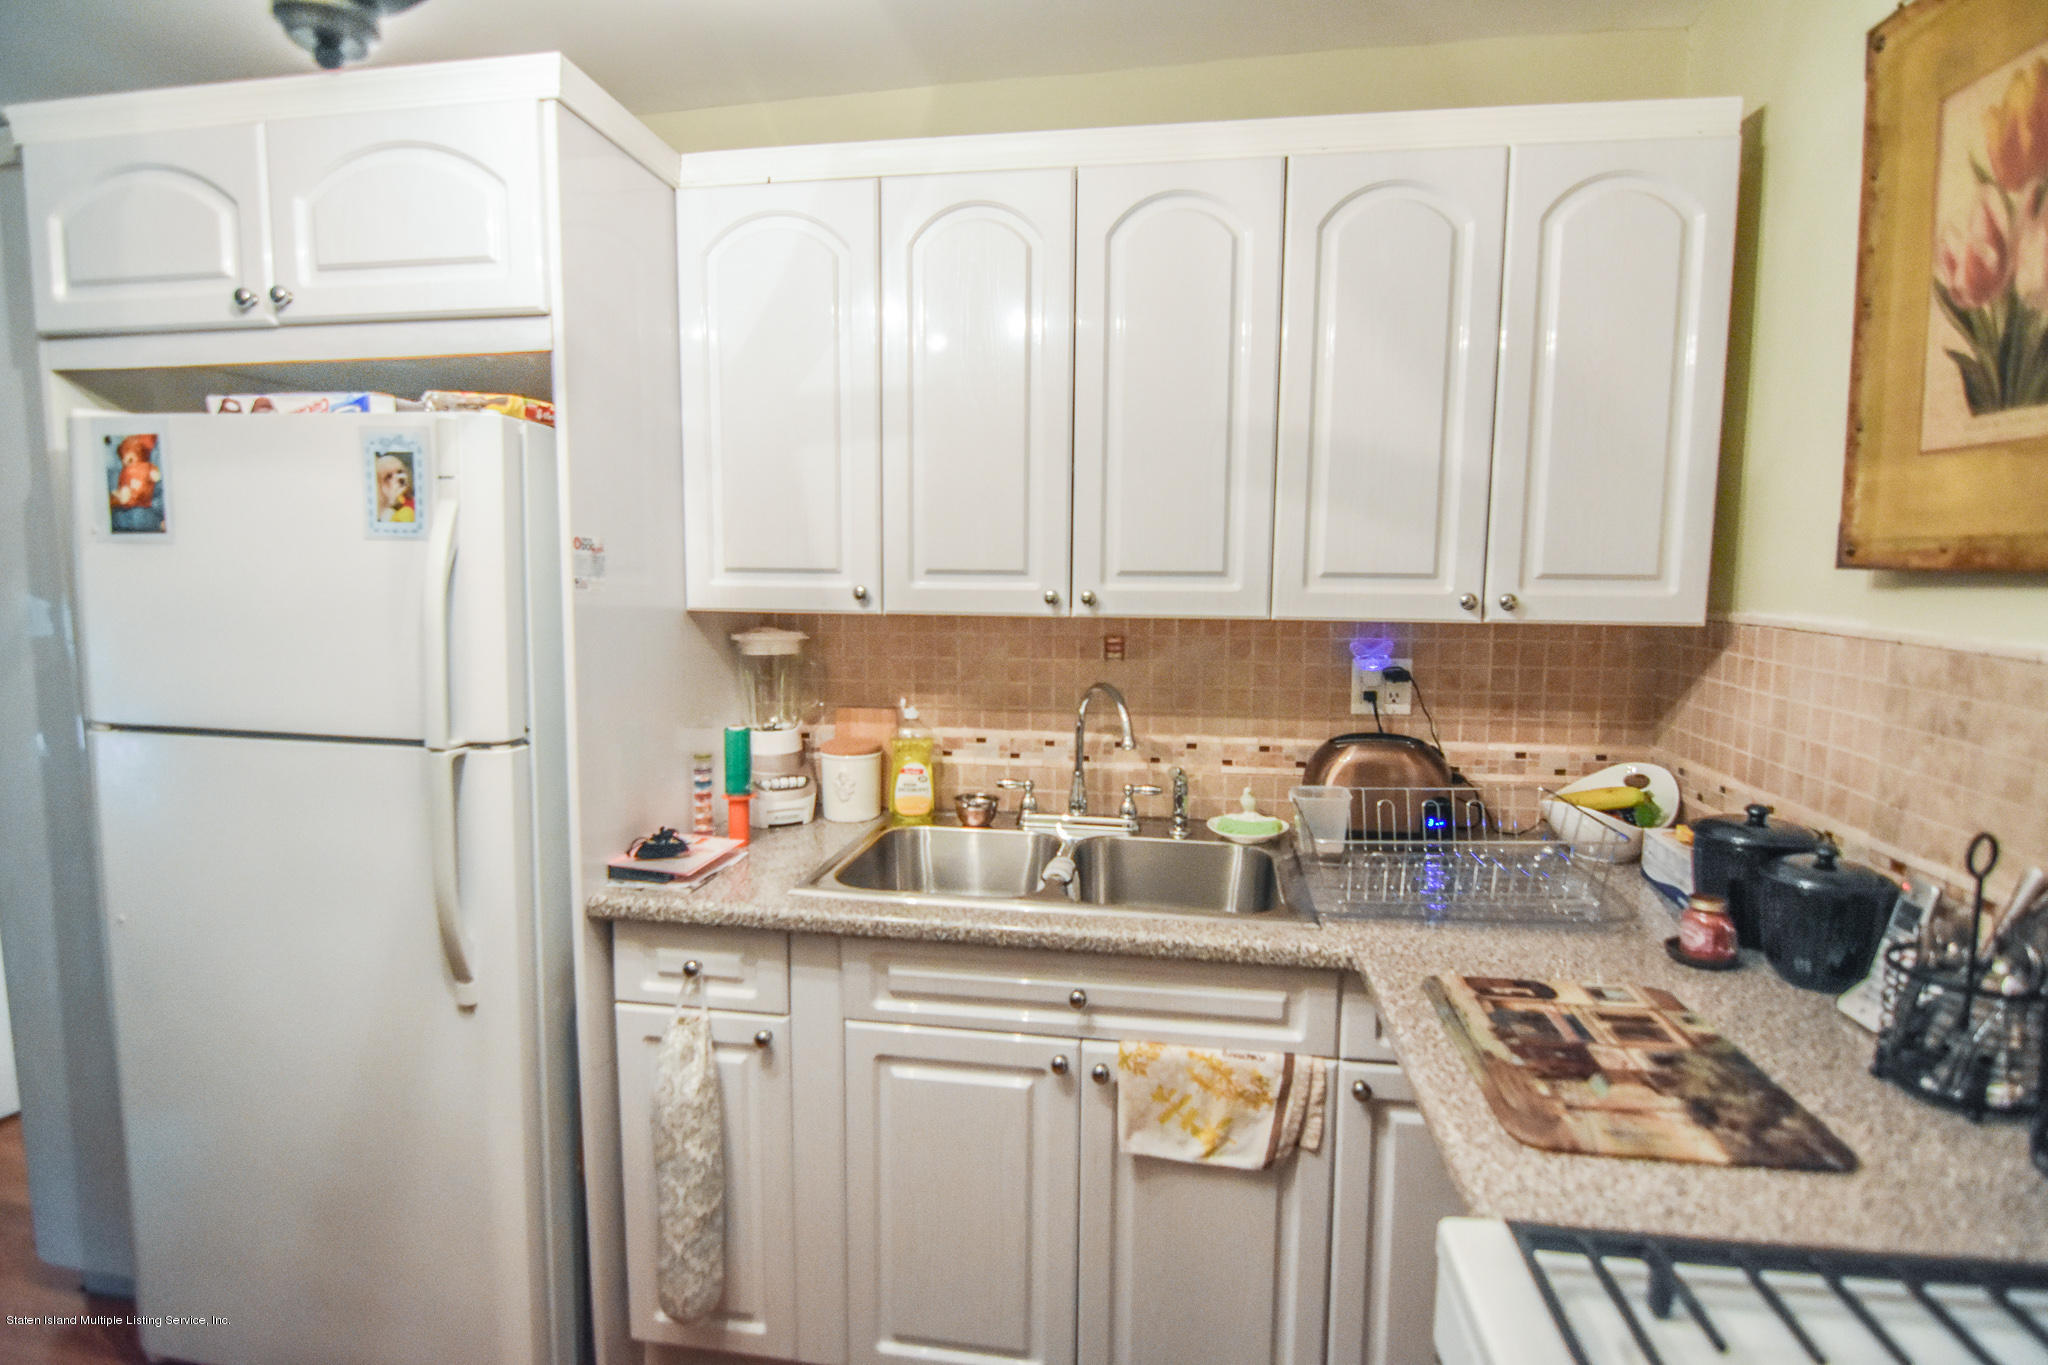 Single Family - Detached 45 Androvette Avenue  Staten Island, NY 10312, MLS-1130190-25